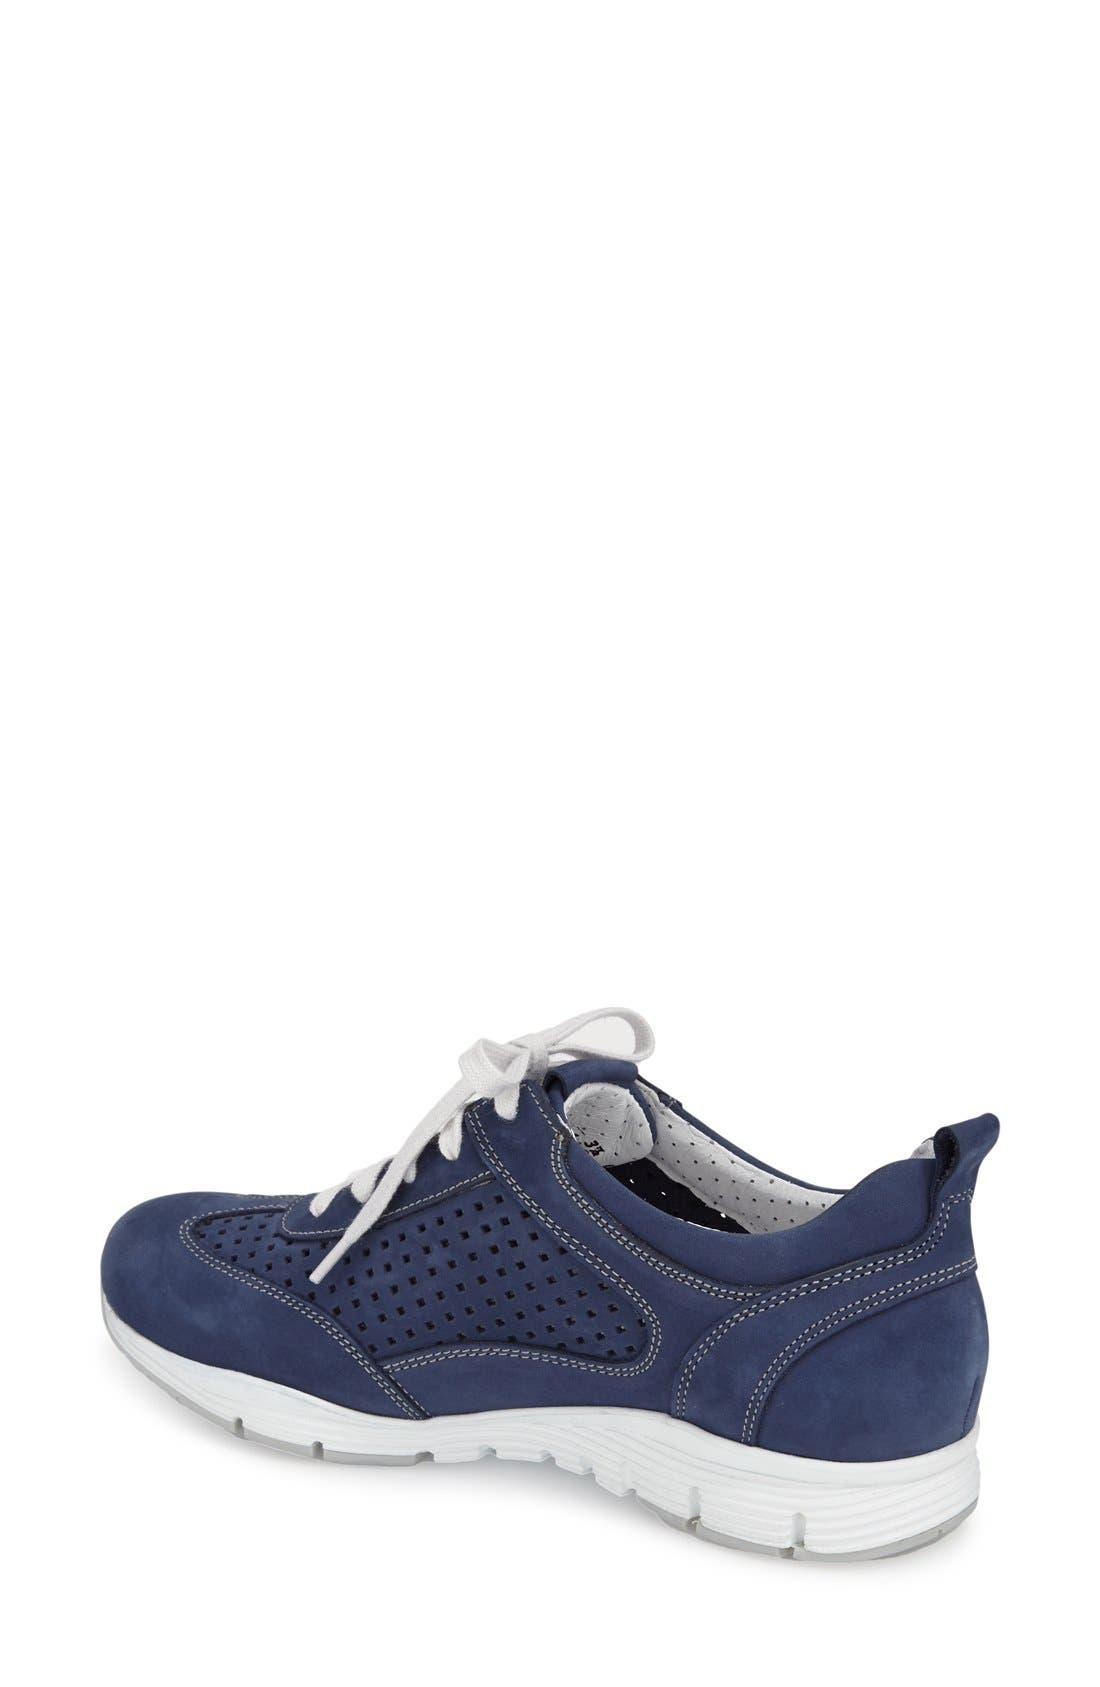 'Yoana' Soft Air Perforated Sneaker,                             Alternate thumbnail 2, color,                             411